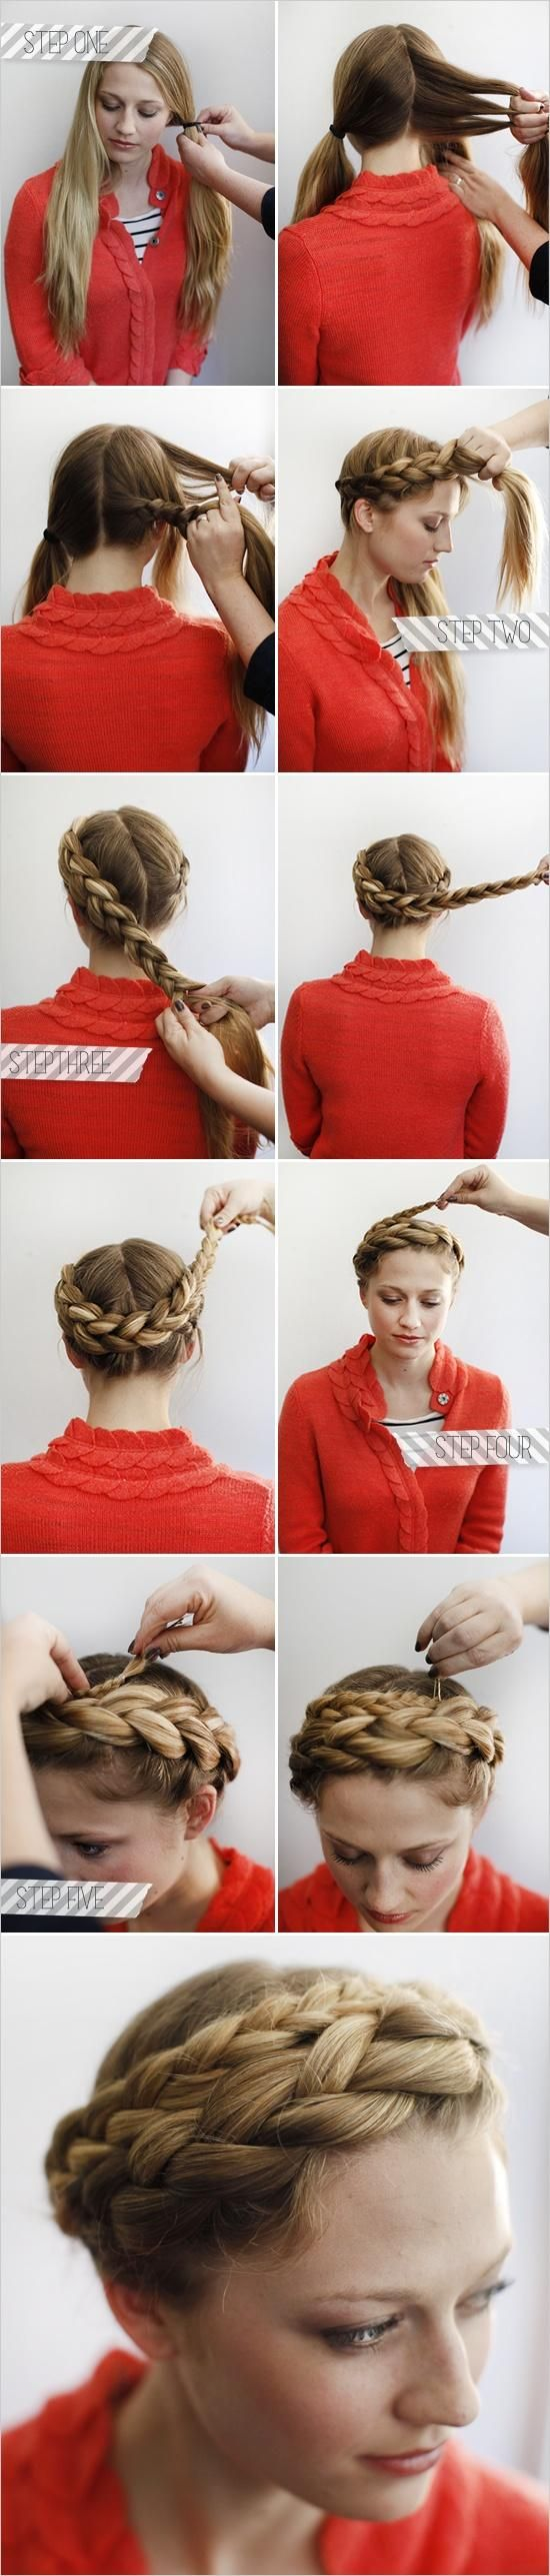 Crown Braid via